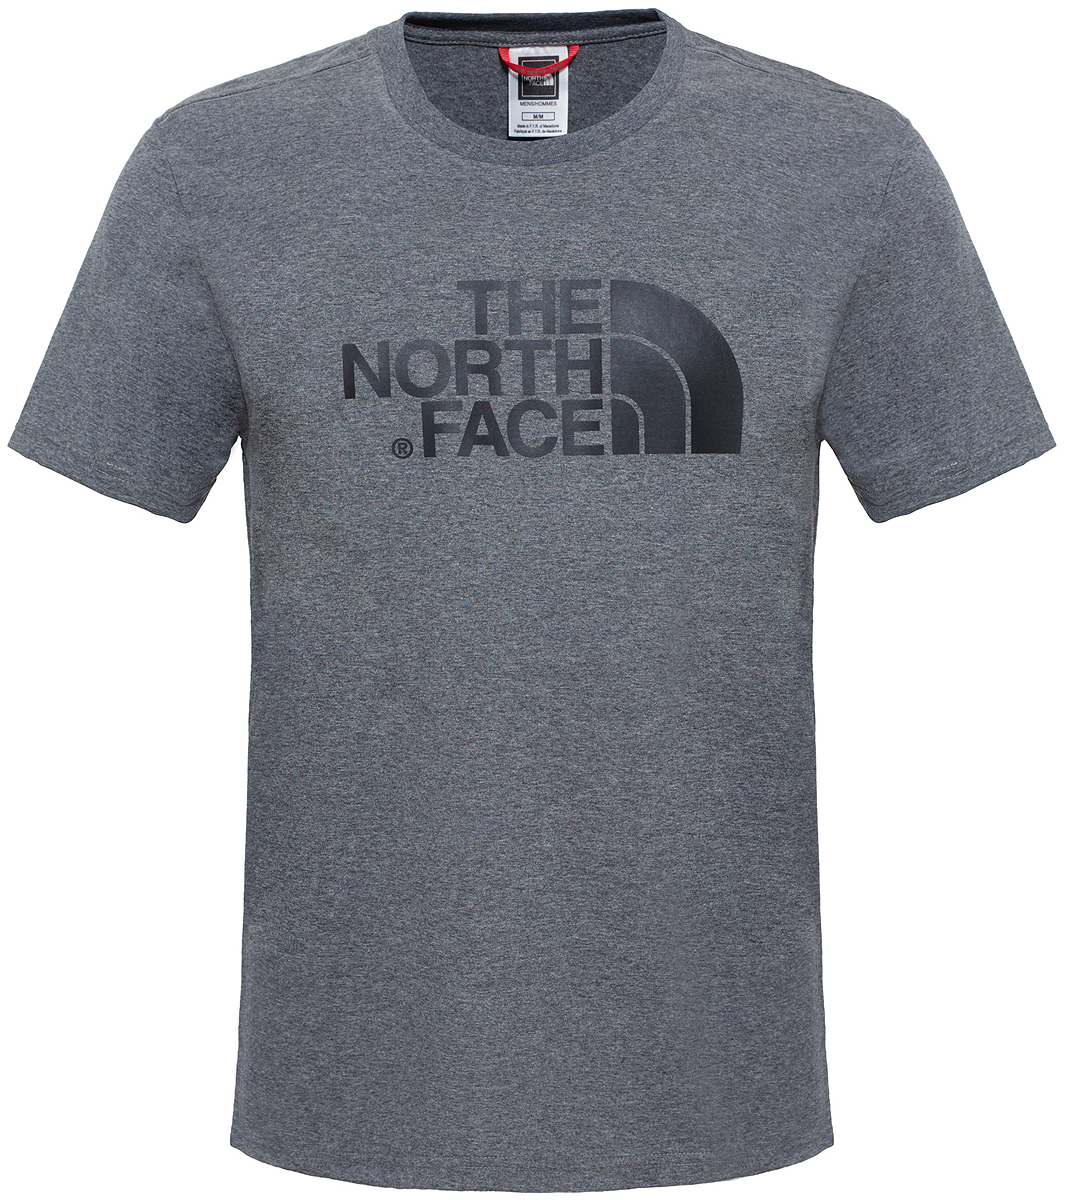 Футболка мужская The North Face M S/S Easy Tee, цвет: серый. T92TX3JBV. Размер XXL (56) футболка the north face the north face youth short sleeve easy tee детская